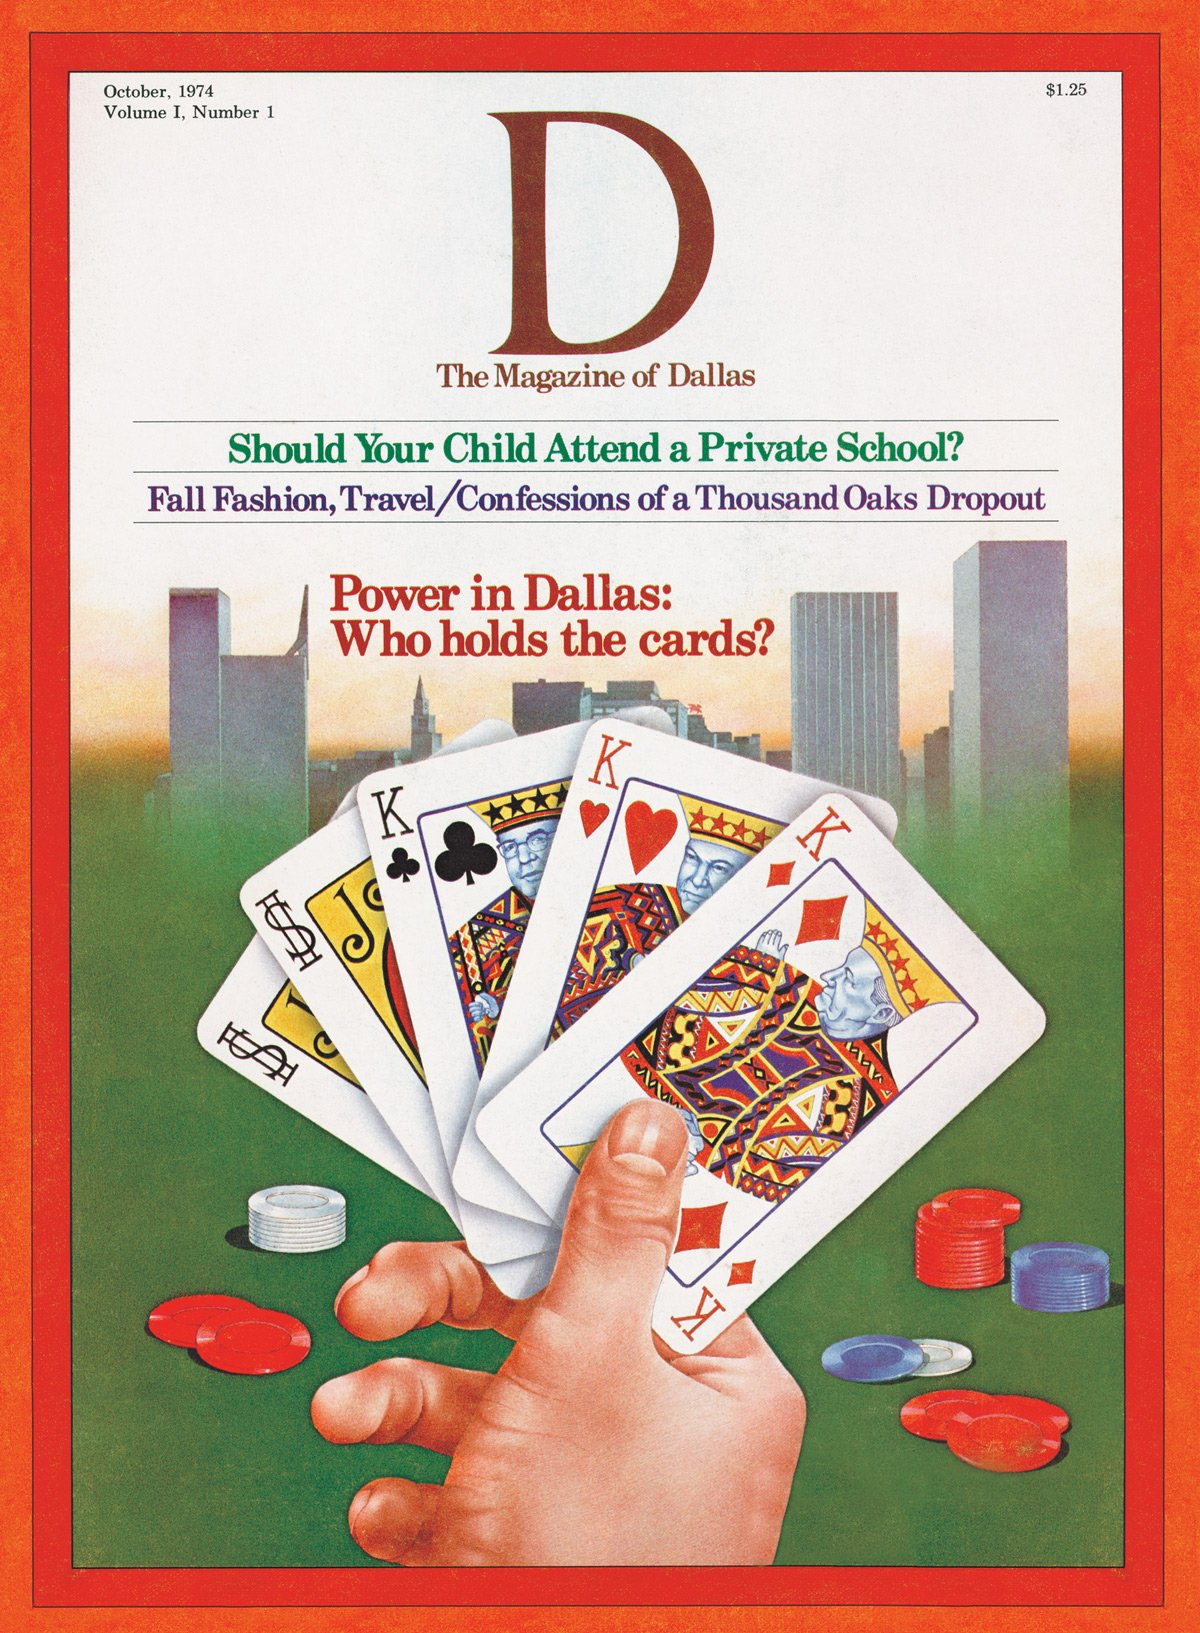 October 1974 cover